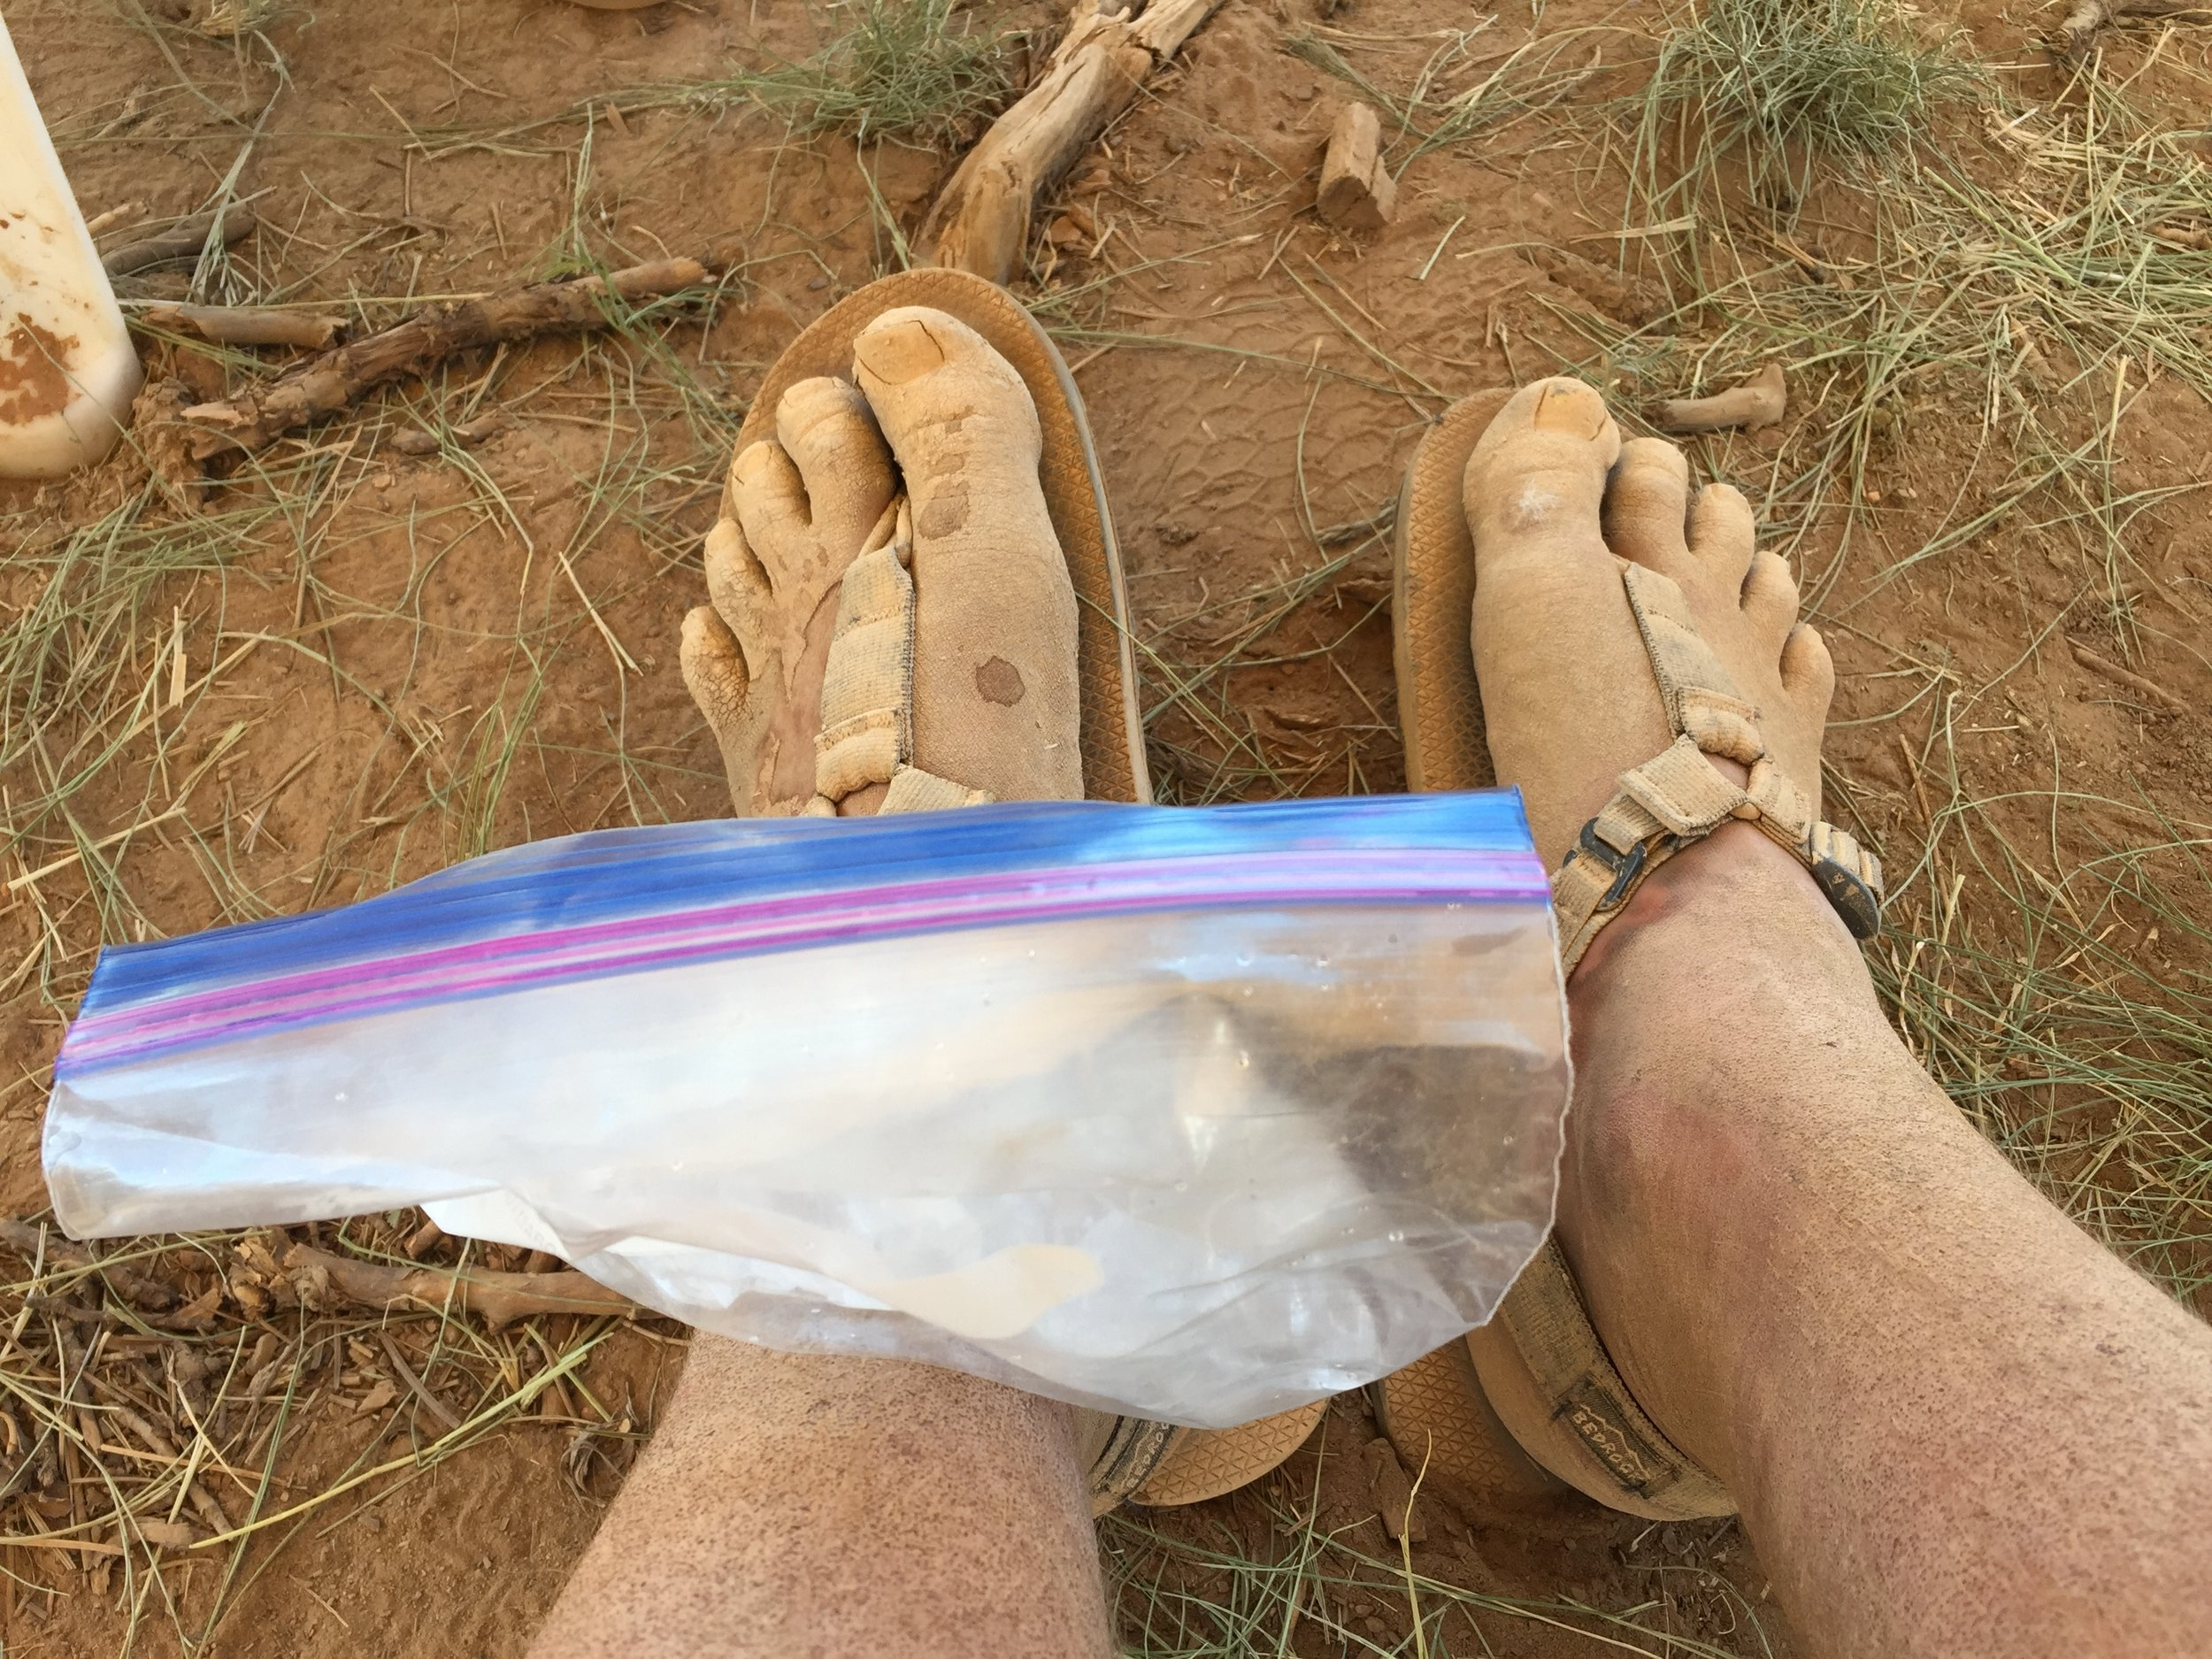 Immediately after finishing the Bryce Canyon 100 I began to ice my painful shin/upper foot, because I wanted to be able to walk again! My foot was swollen to double its normal size and it took me about three weeks to get it back to normal.